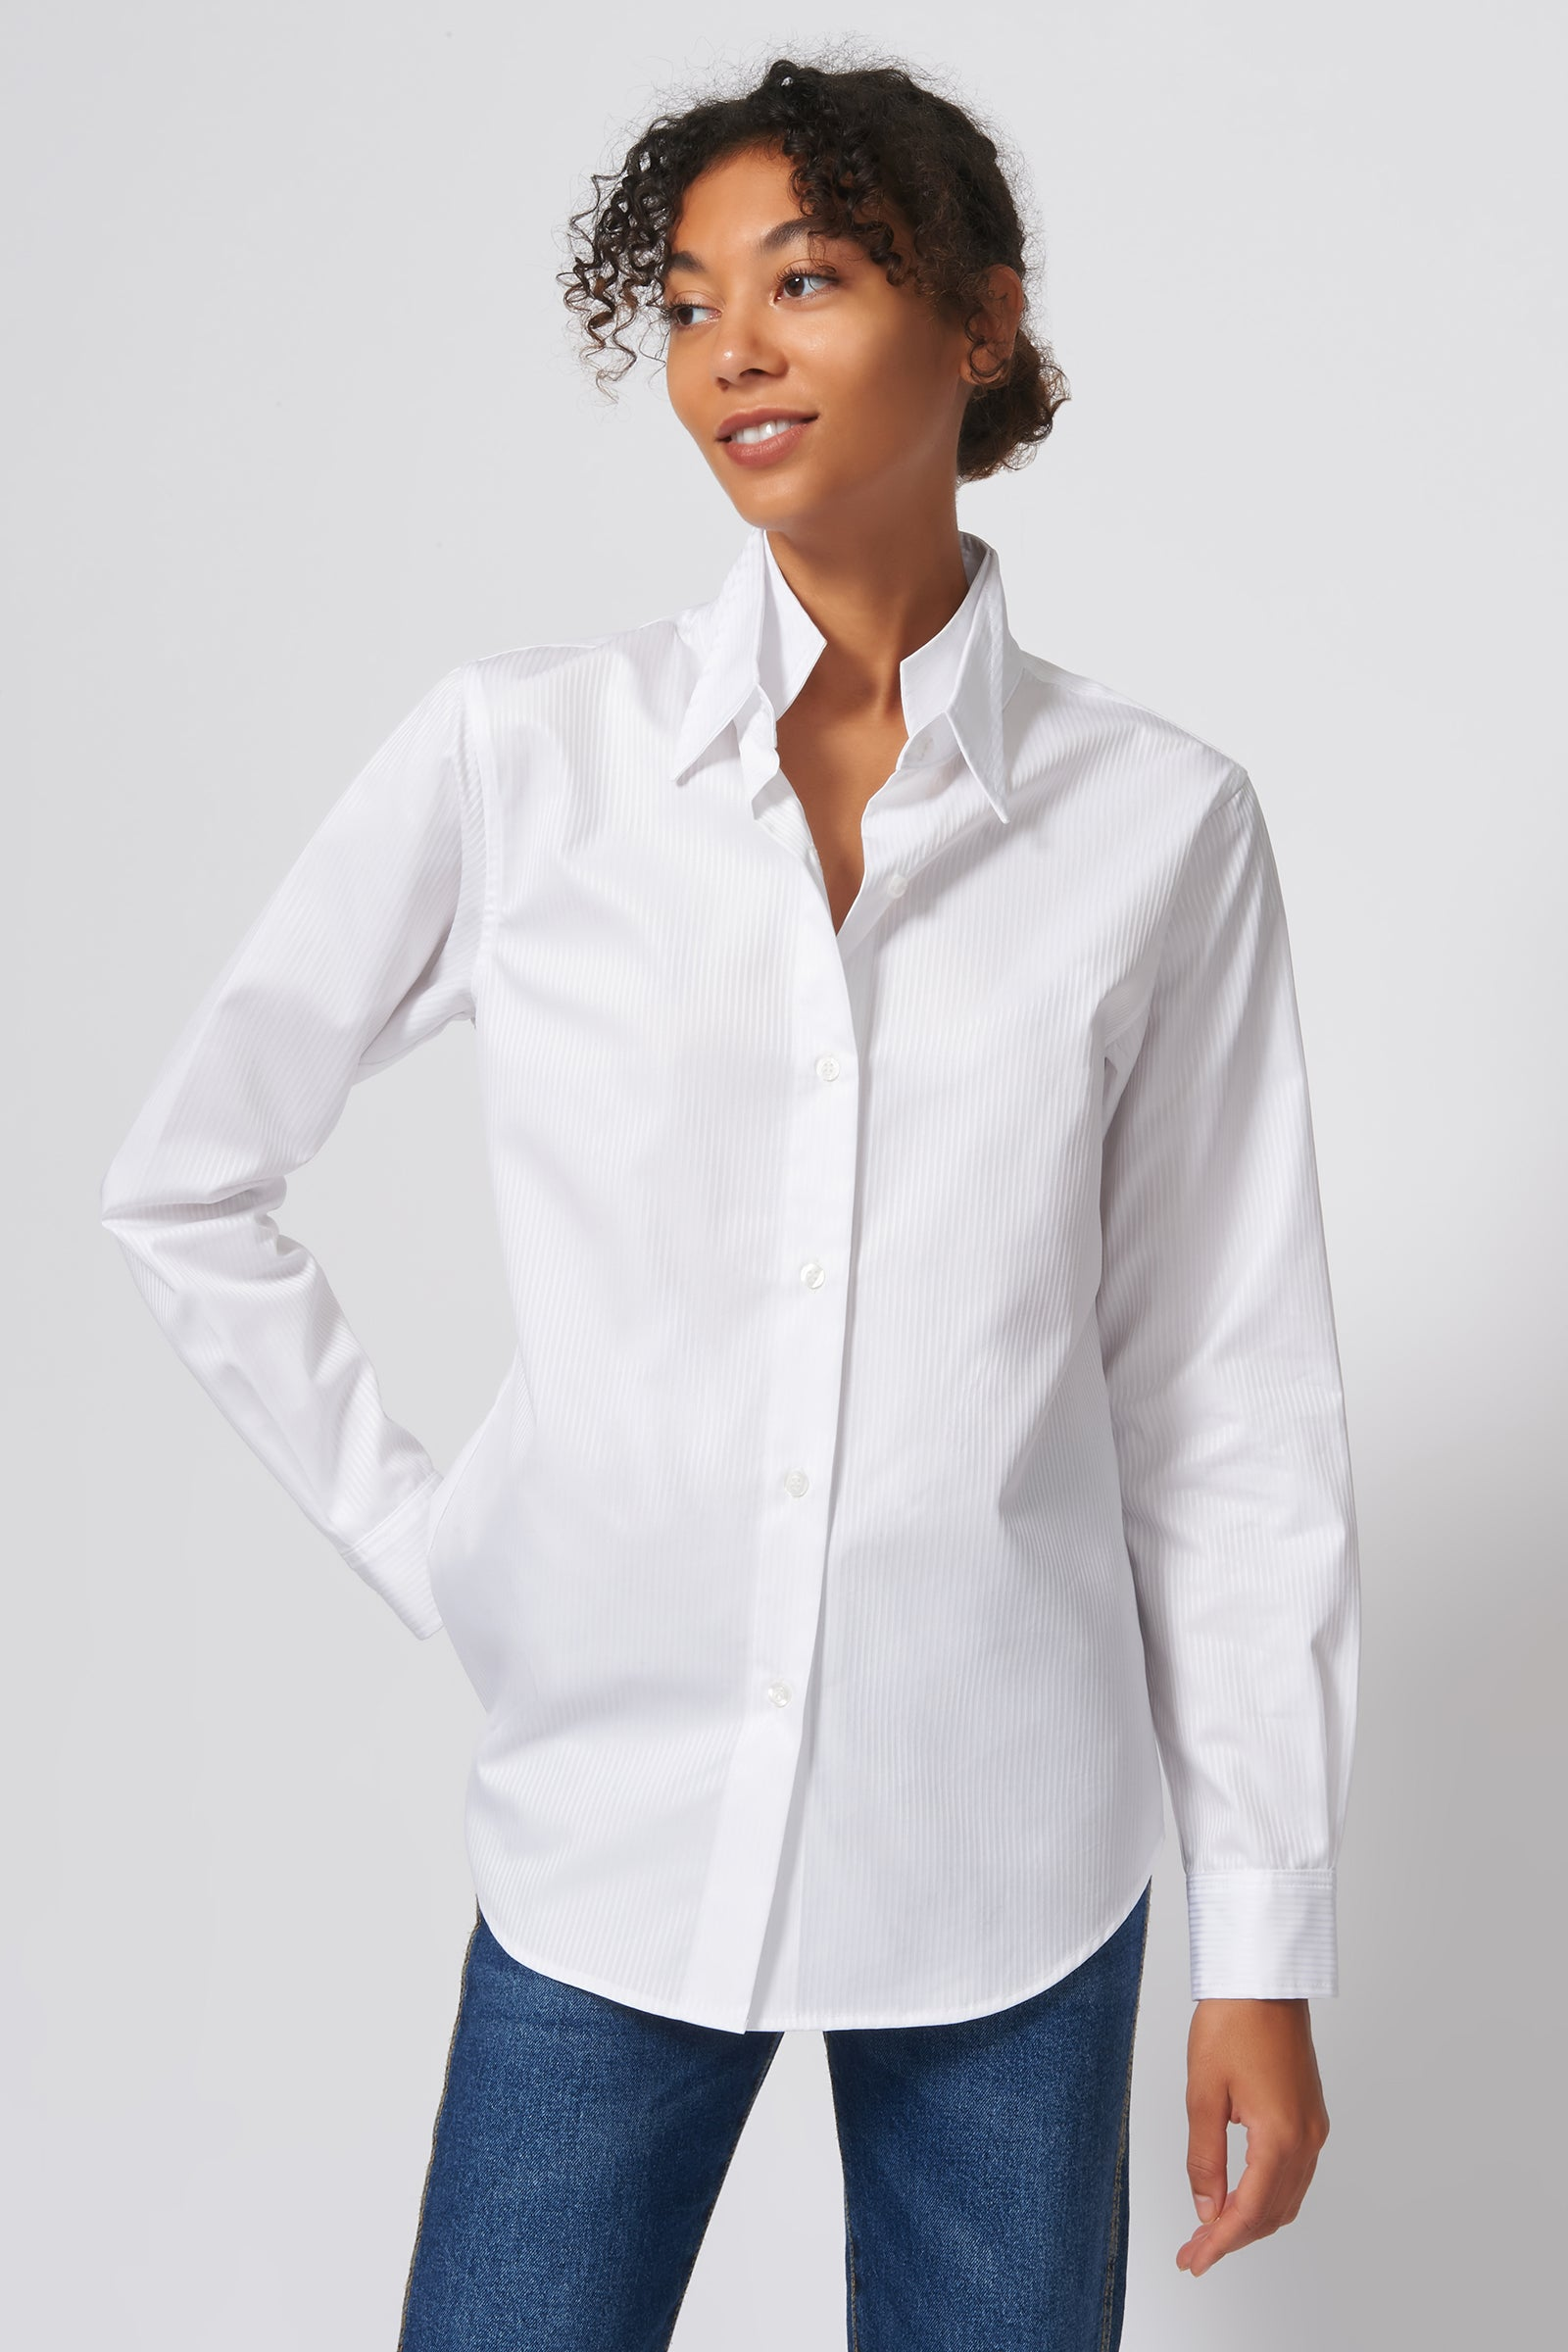 Kal Rieman Double Collar Shirt in White Satin Stripe on Model Front View